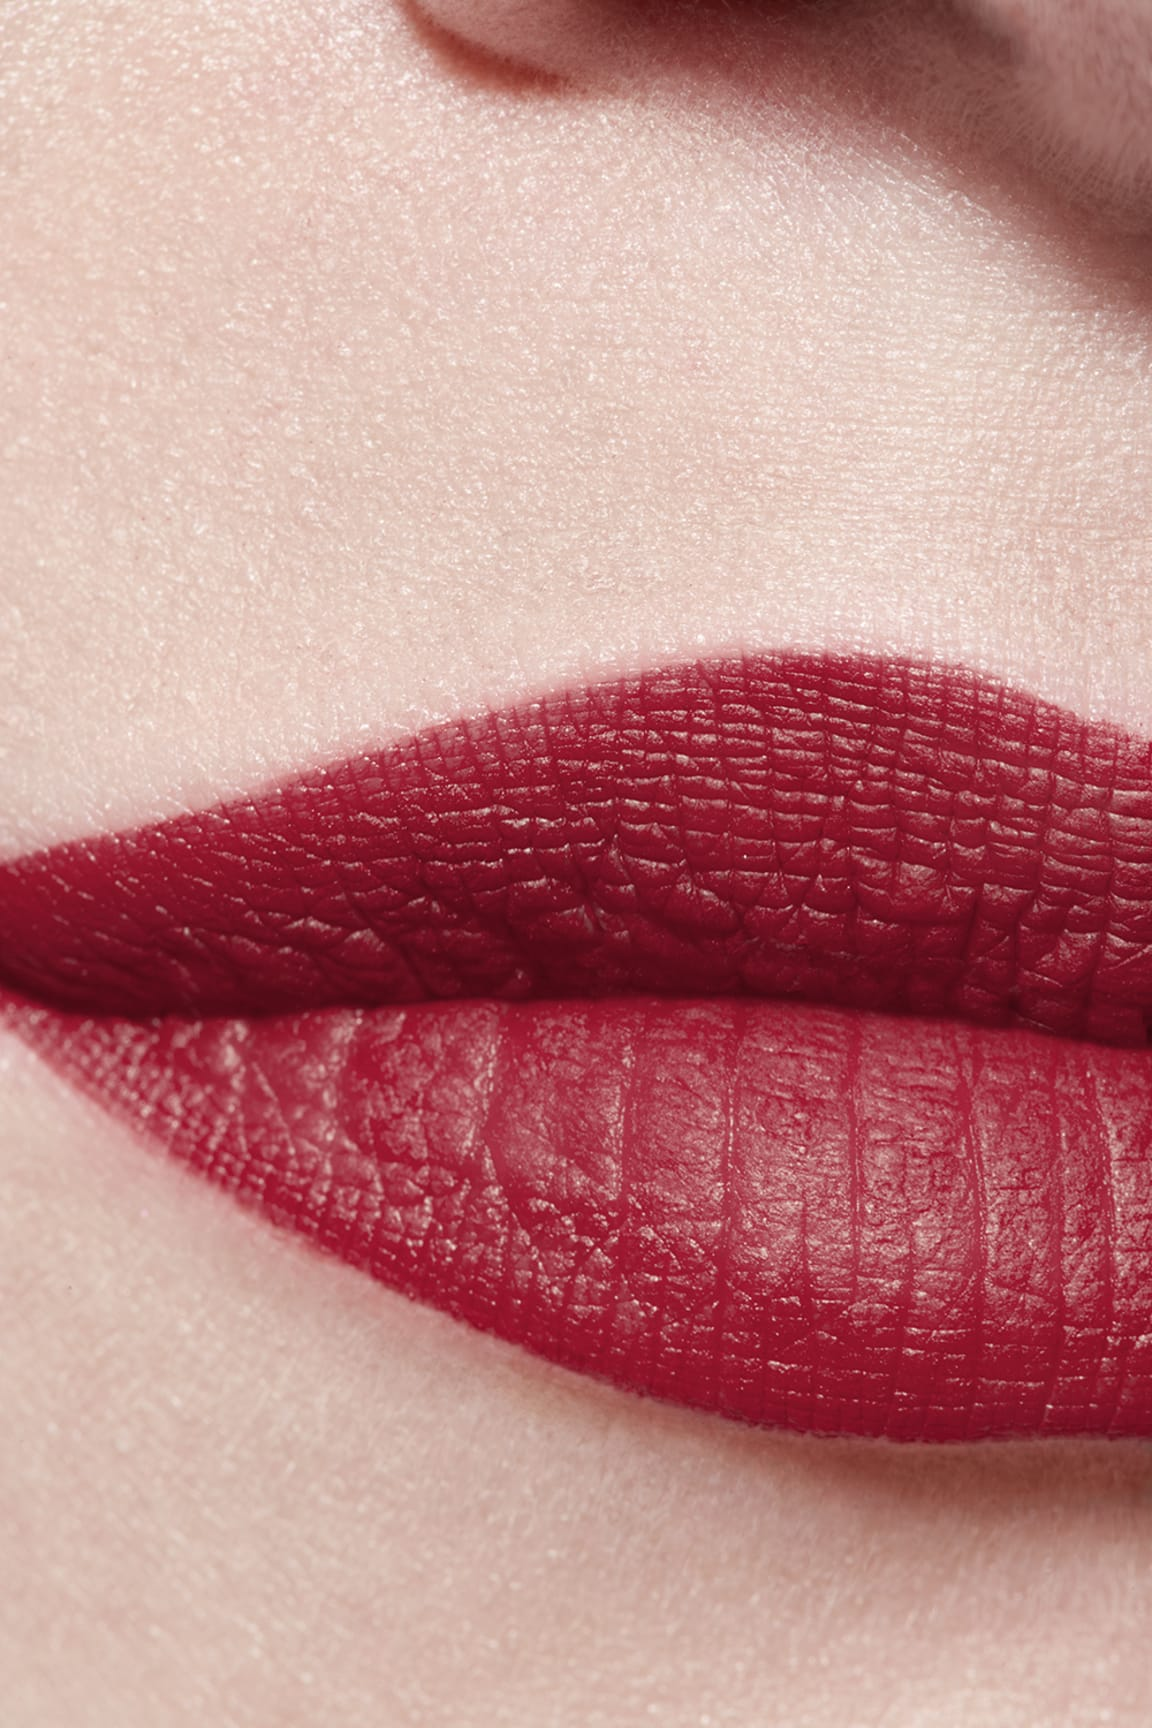 Application makeup visual 3 - ROUGE ALLURE VELVET 58 - ROUGE VIE